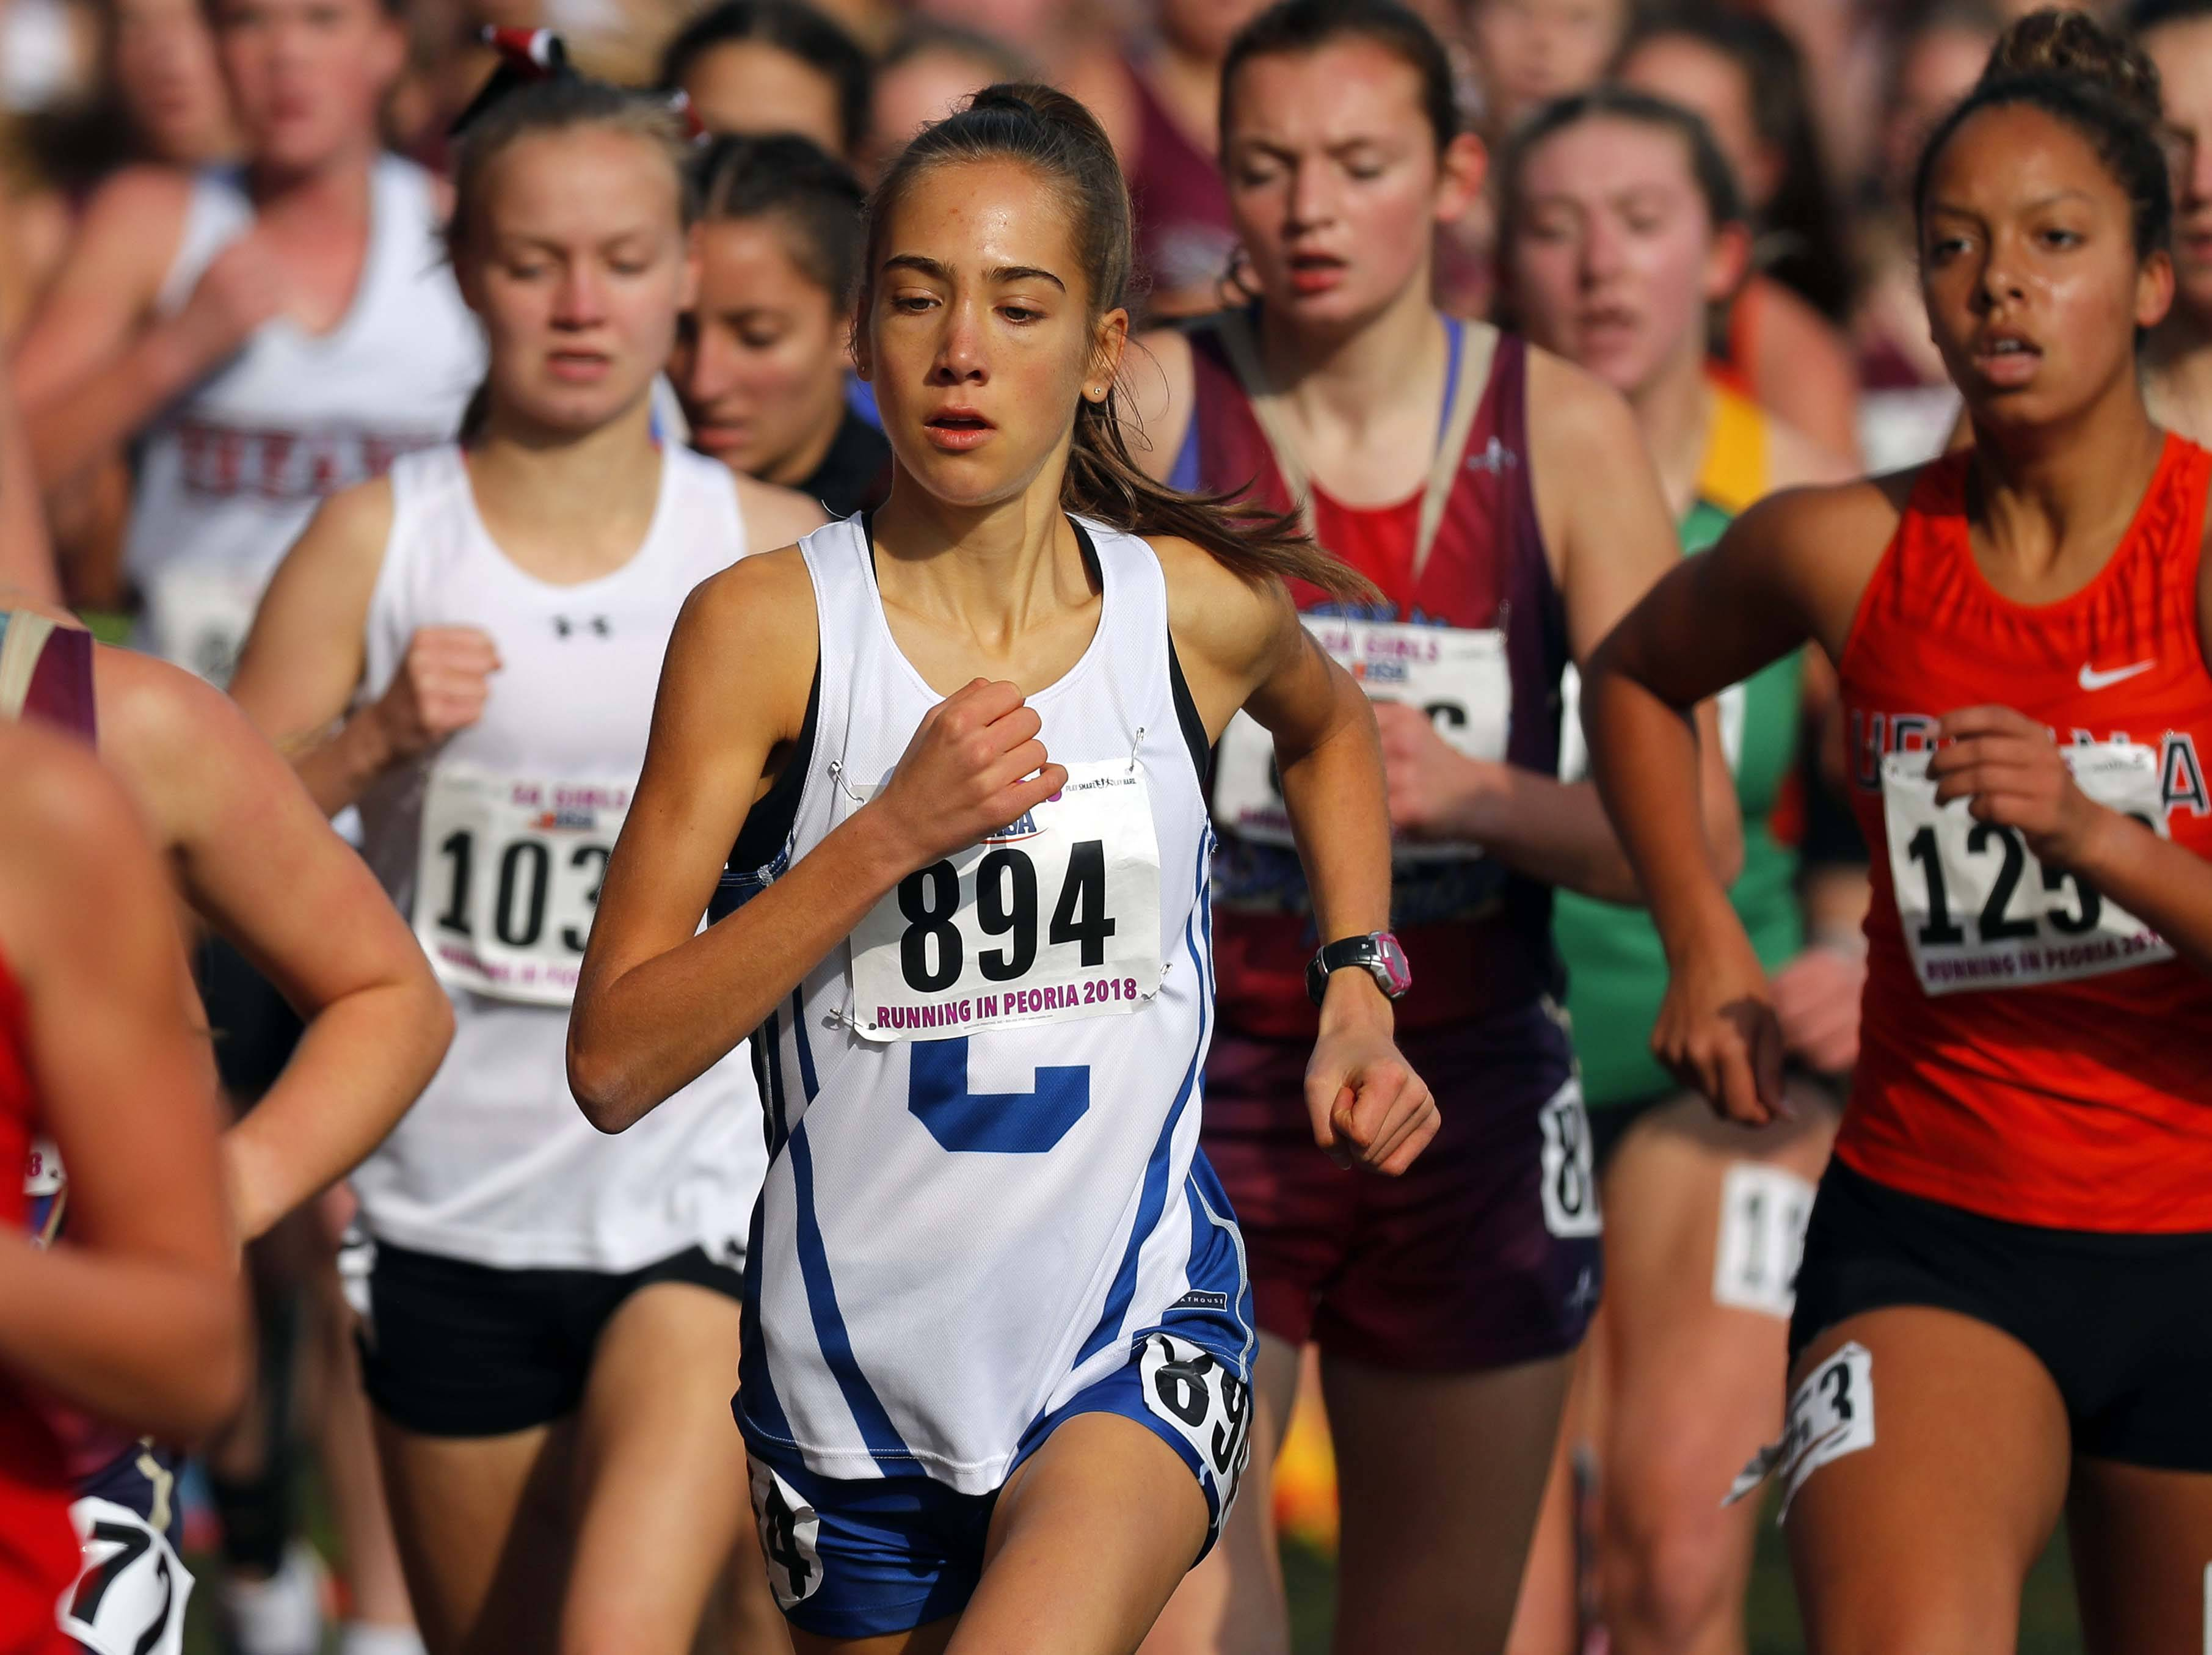 Burlington Central's Erin Jossart (894) runs during the girls Class 2A state cross country finals Saturday at Detweiller Park in Peoria.